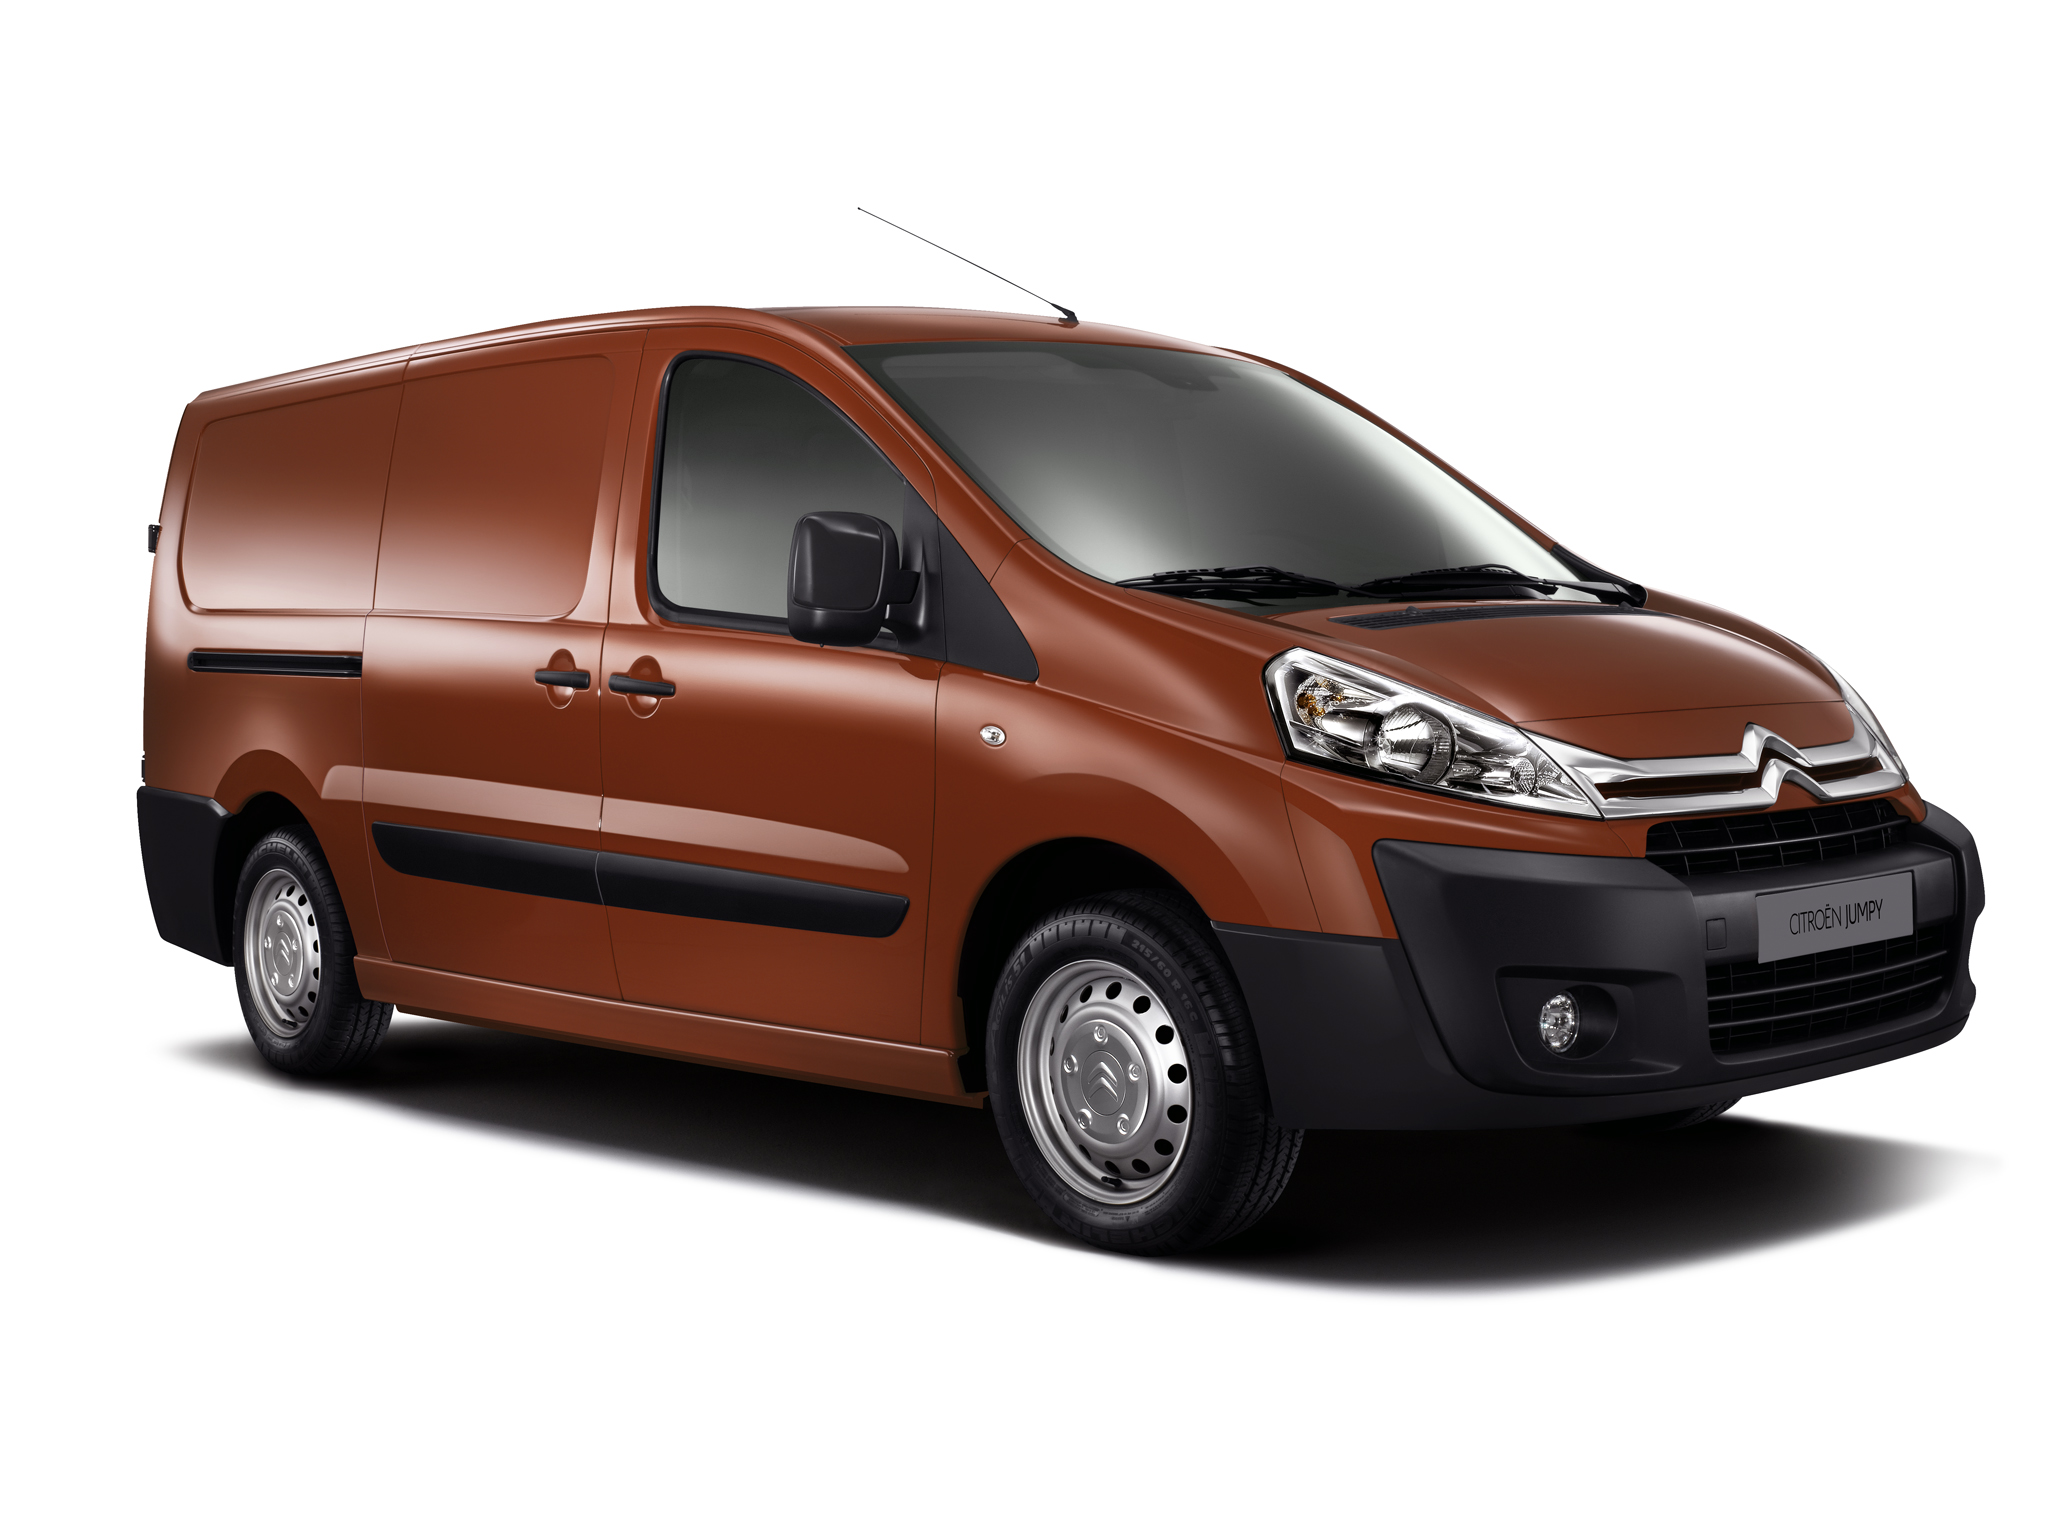 Citroen Jumpy 1.6 2012 photo - 3